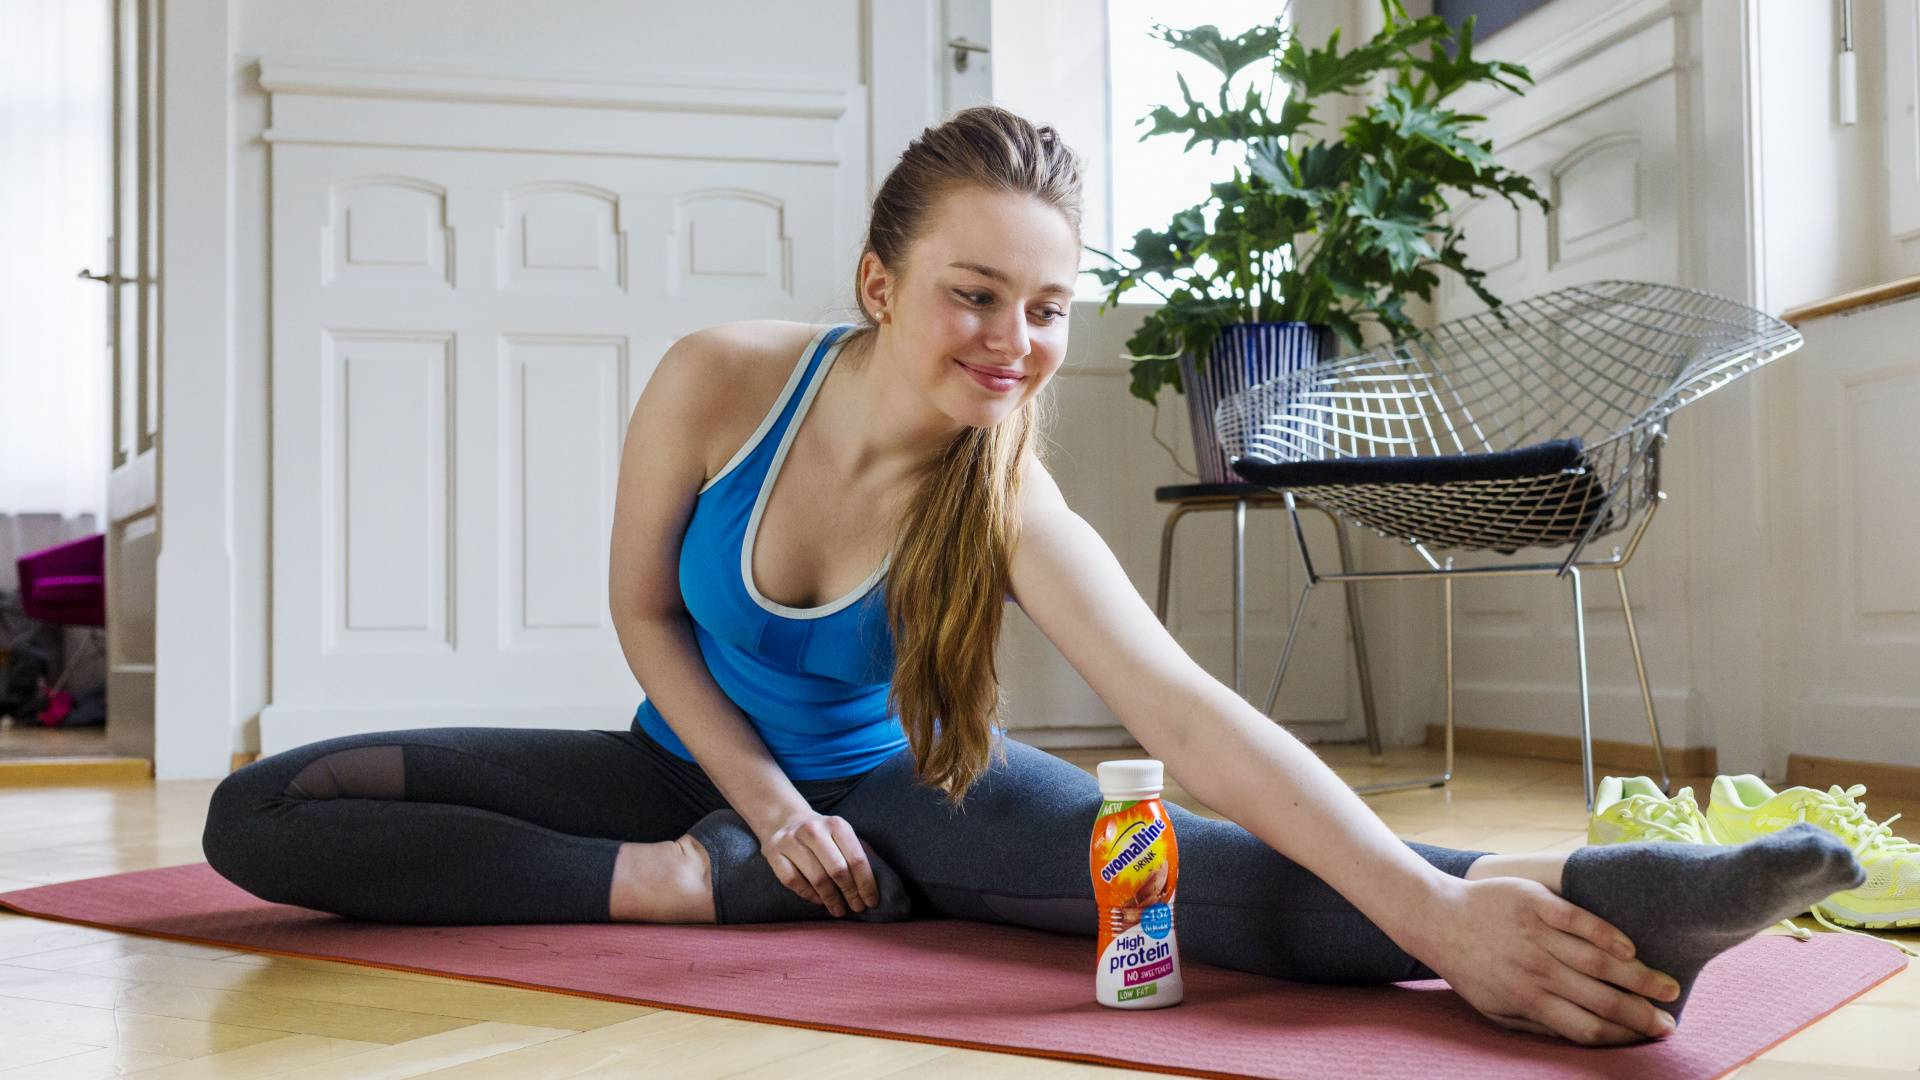 Ovomaltine High Protein Drink beim Yoga